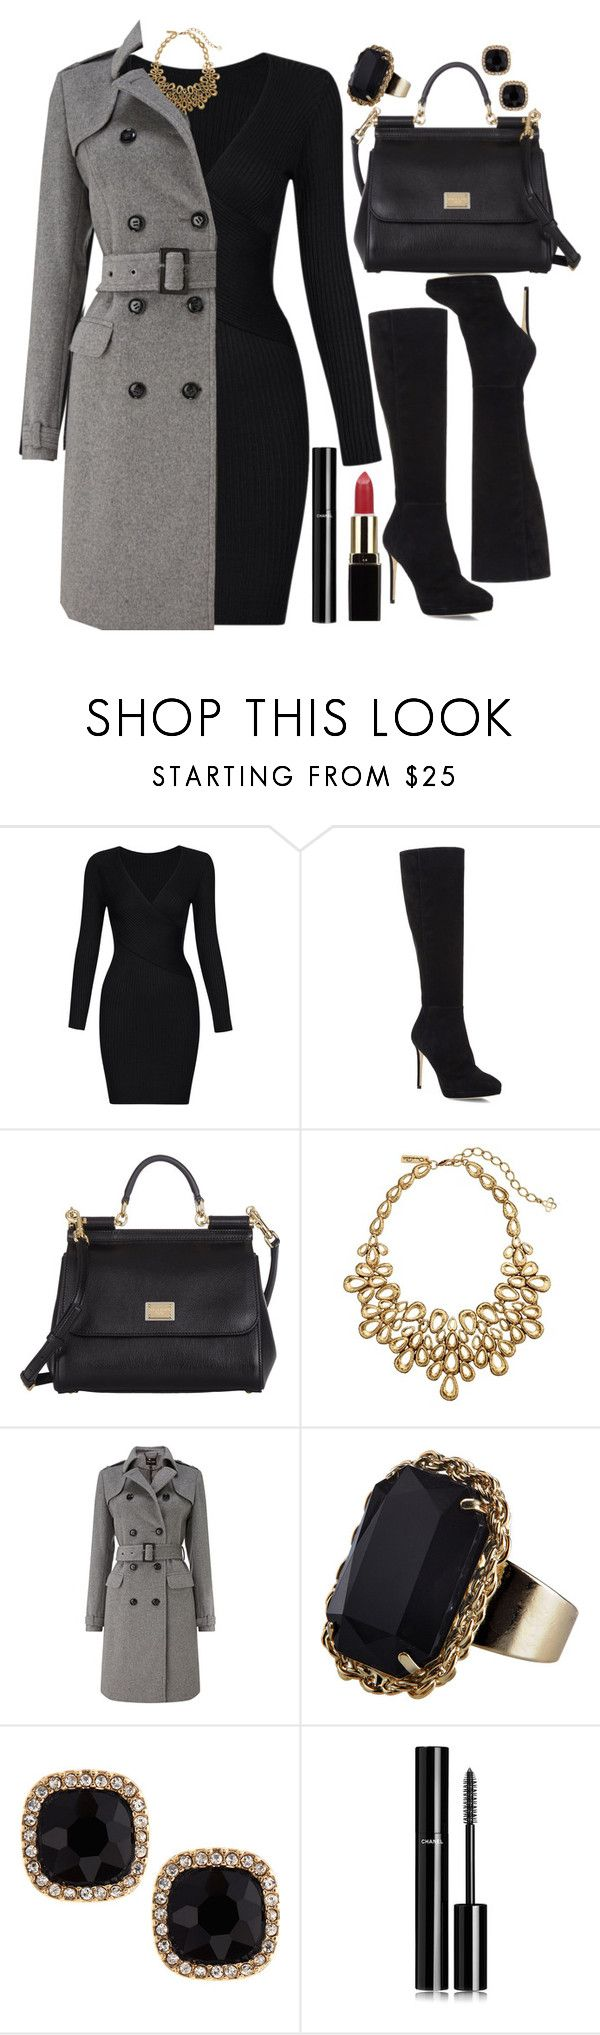 """""""Untitled #4250"""" by natalyasidunova ❤ liked on Polyvore featuring Jimmy Choo, Dolce&Gabbana, Oscar de la Renta, Phase Eight, Monsoon, Fragments and Chanel"""